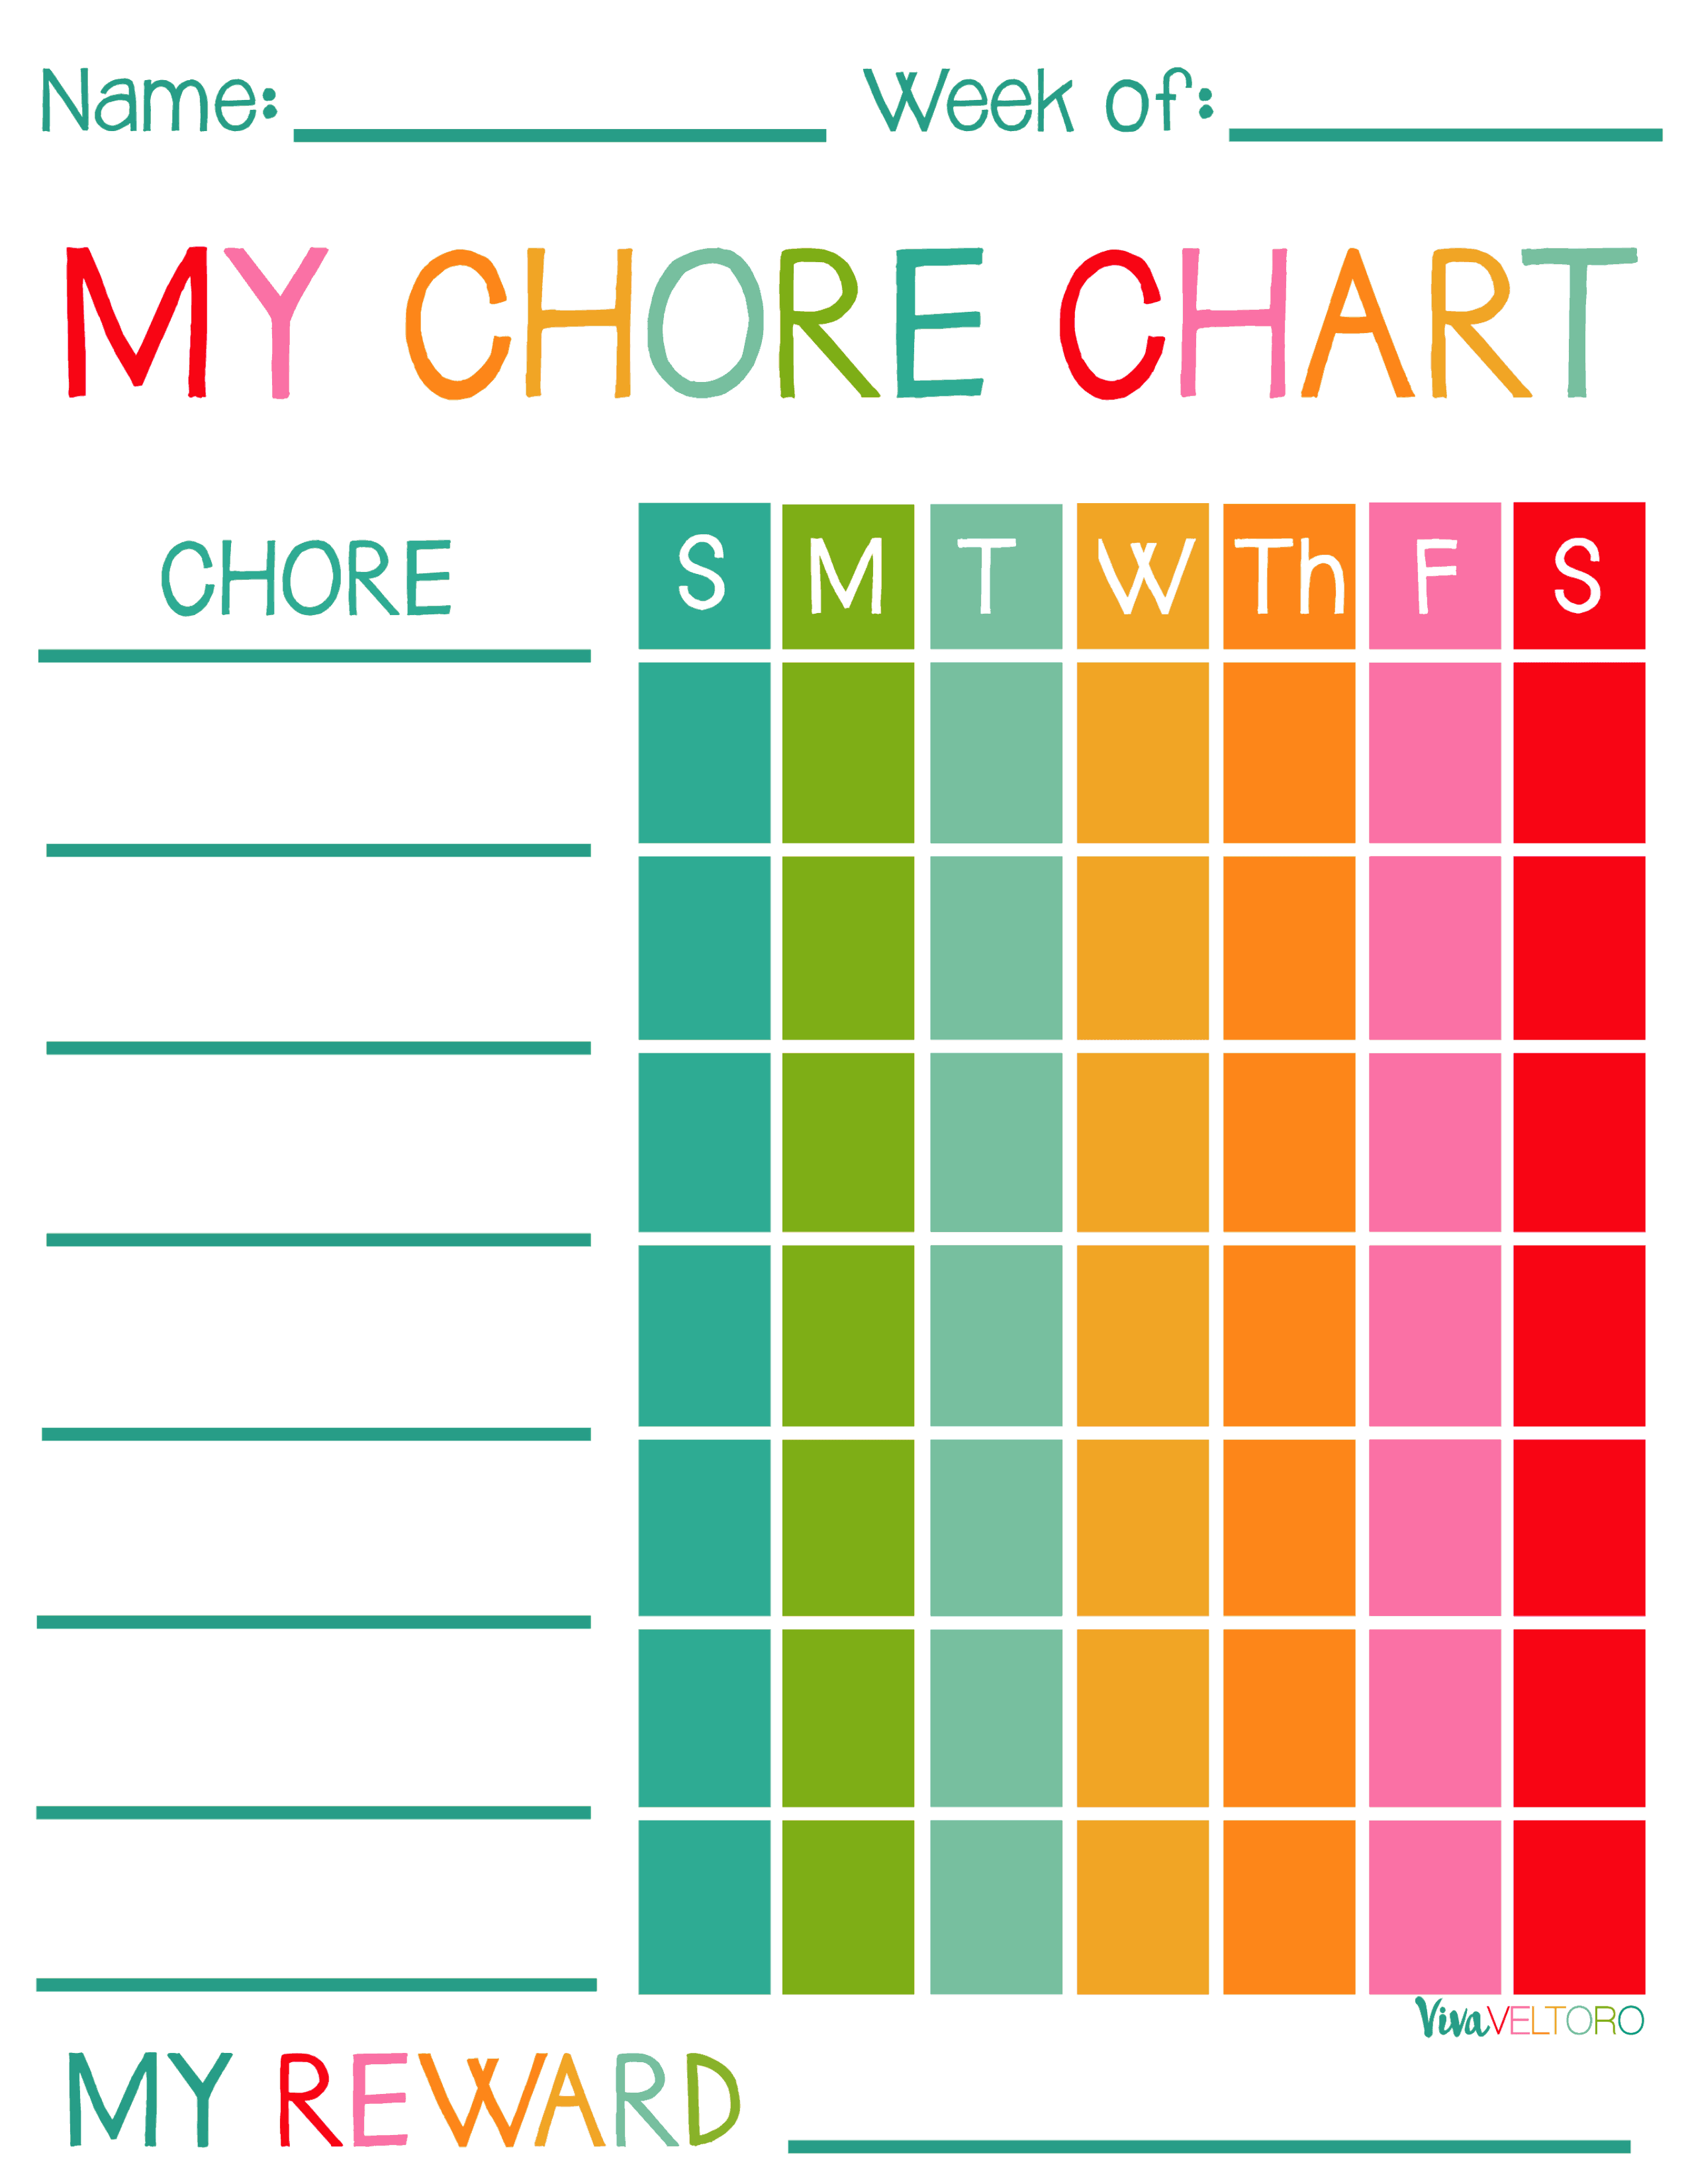 graphic relating to Chore Chart Printable referred to as Cost-free Printable Chore Charts for Youngsters! - Viva Veltoro